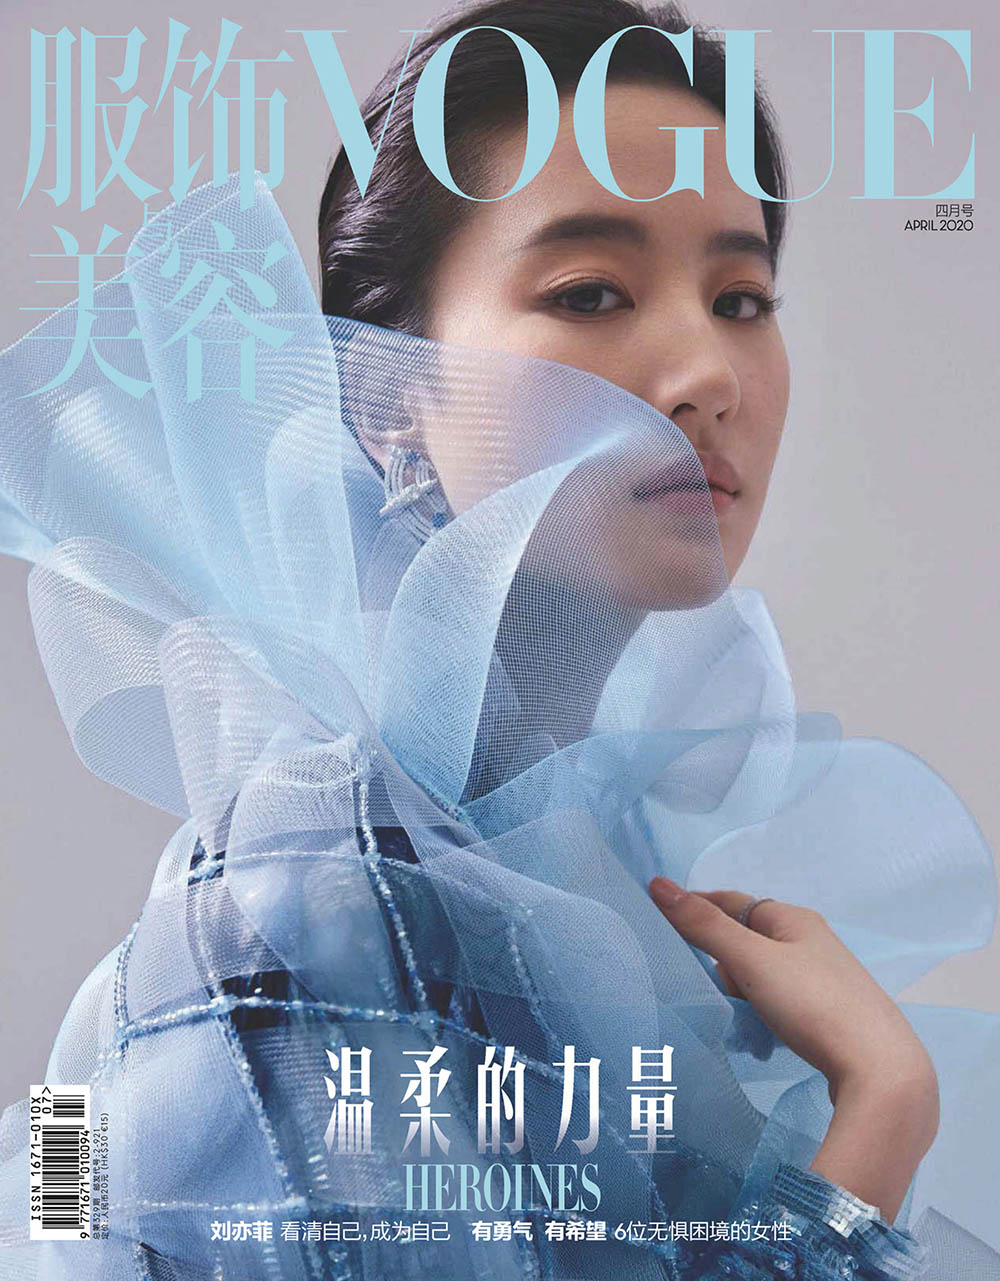 Liu Yifei covers Vogue China April 2020 by Kai Z Feng